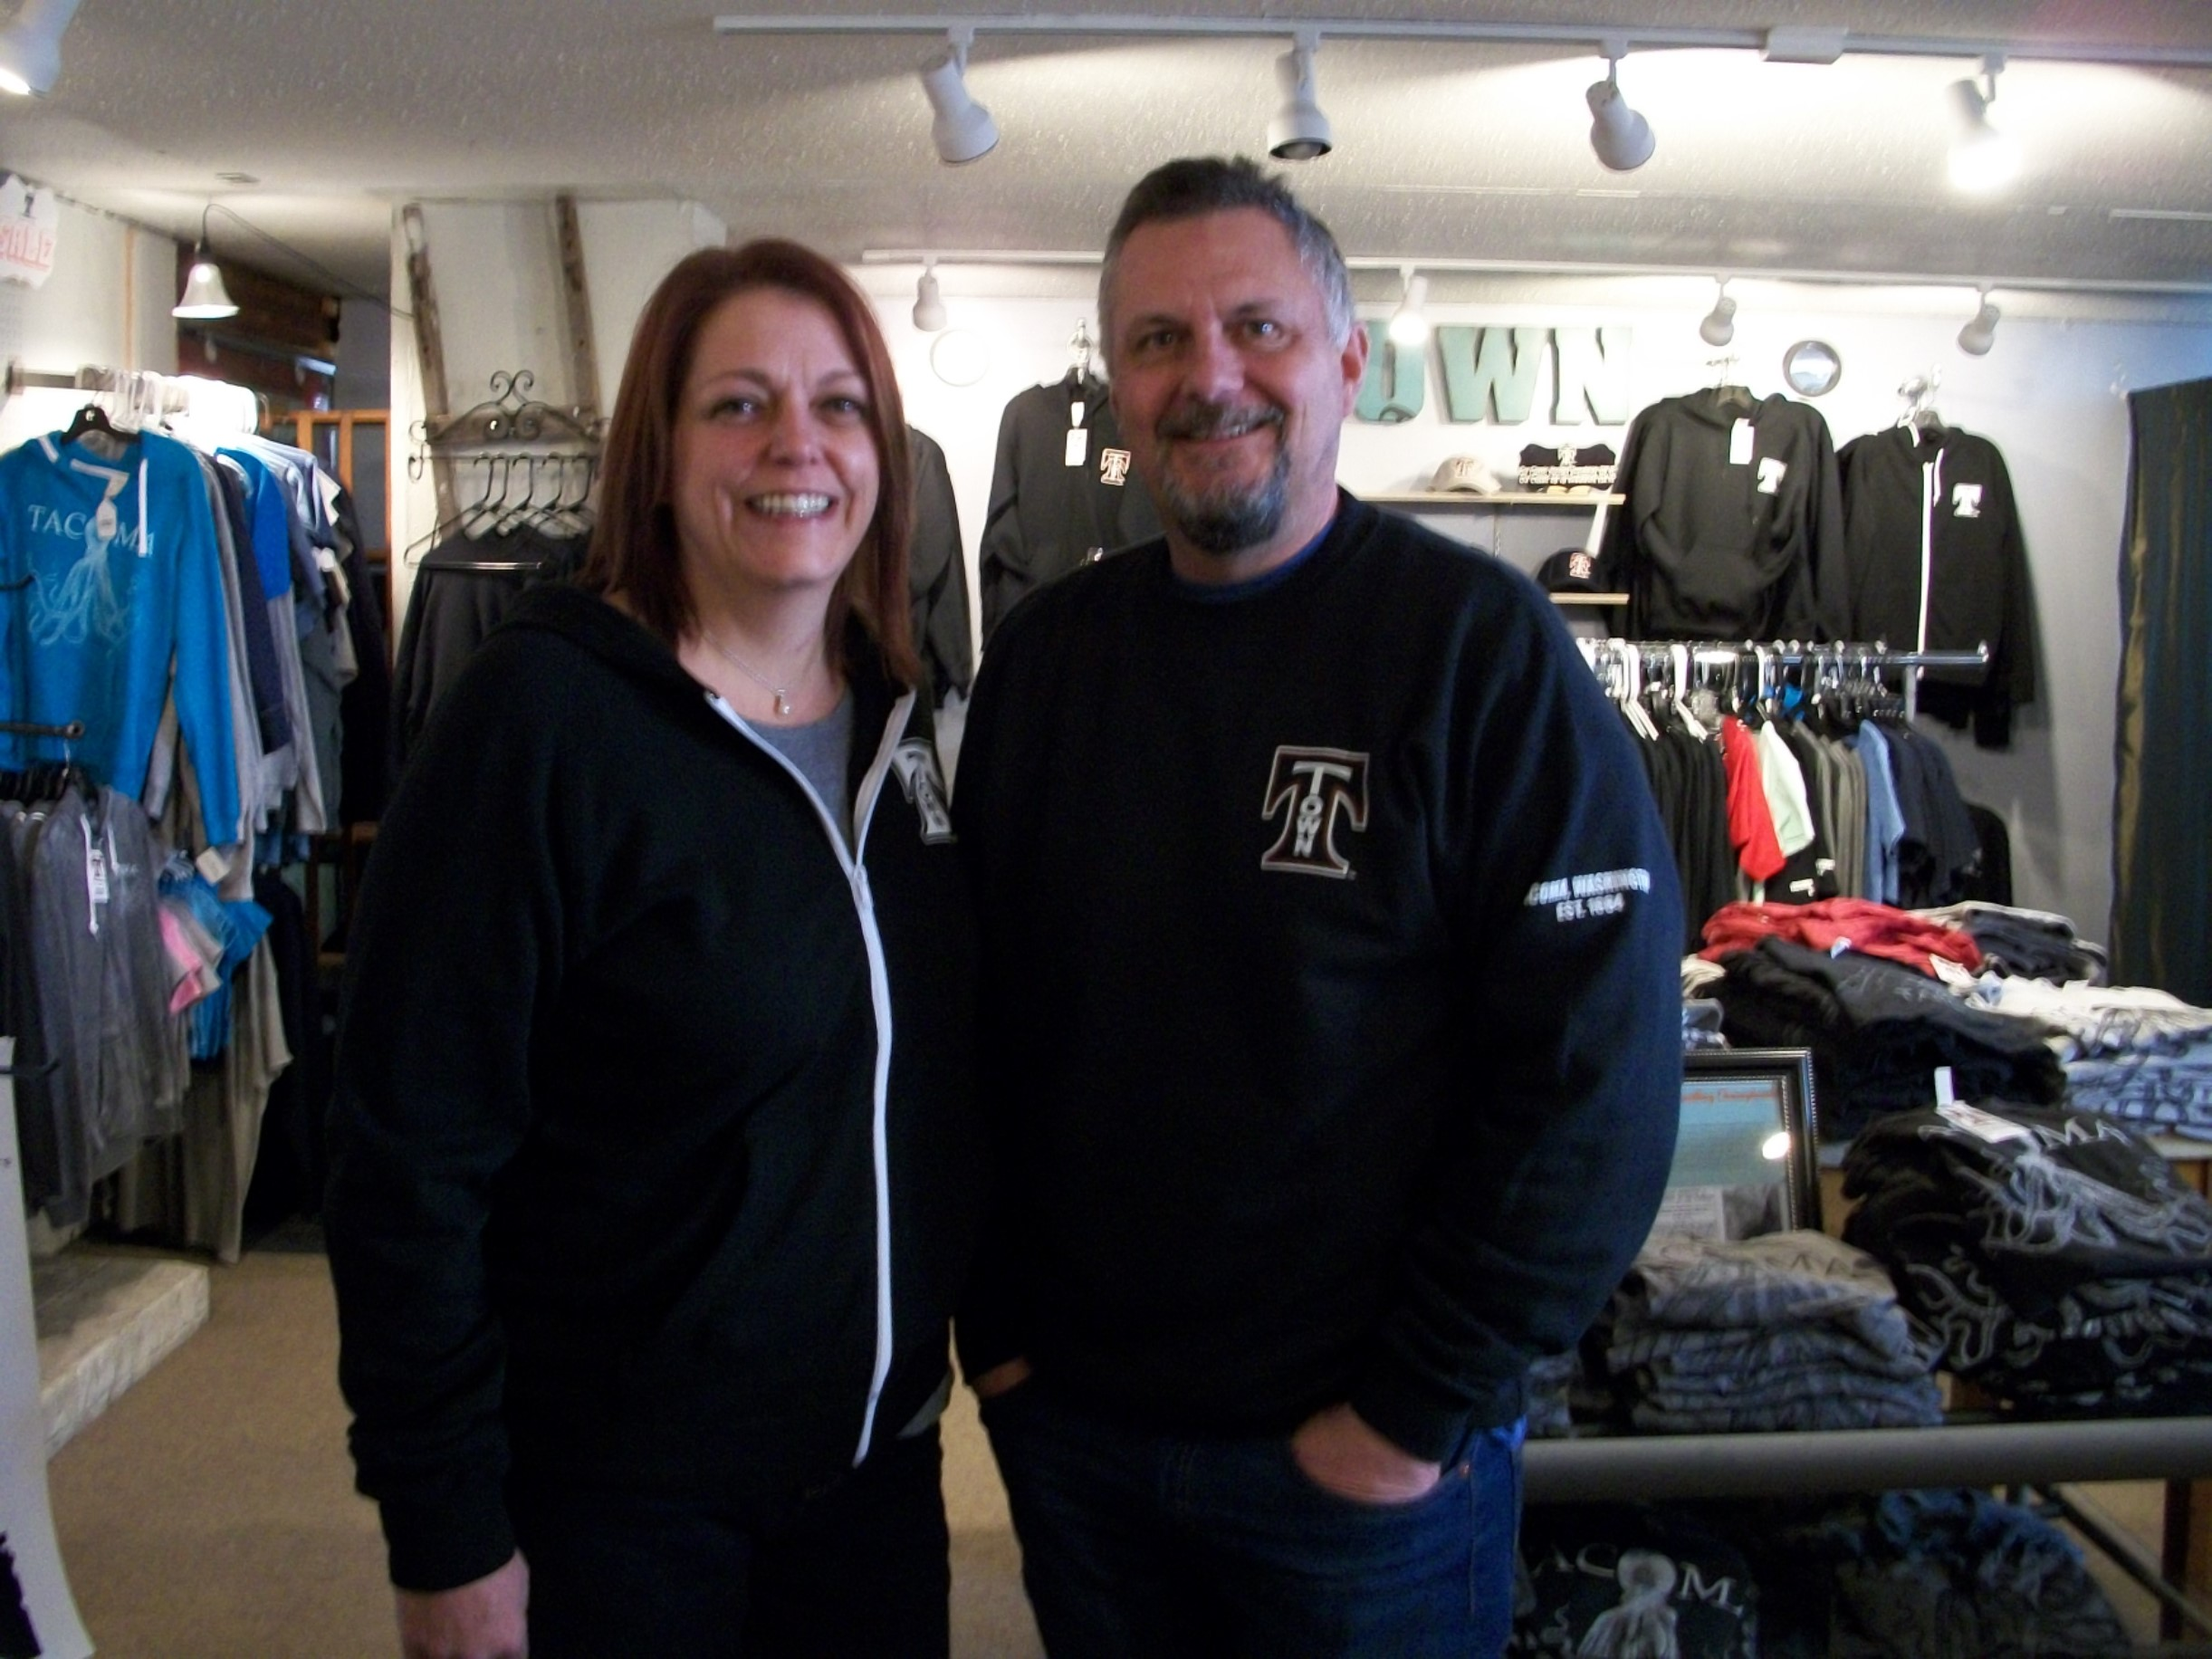 084032c25d2f6 T-Town Apparel: Outfitting Tacoma Locals in Style